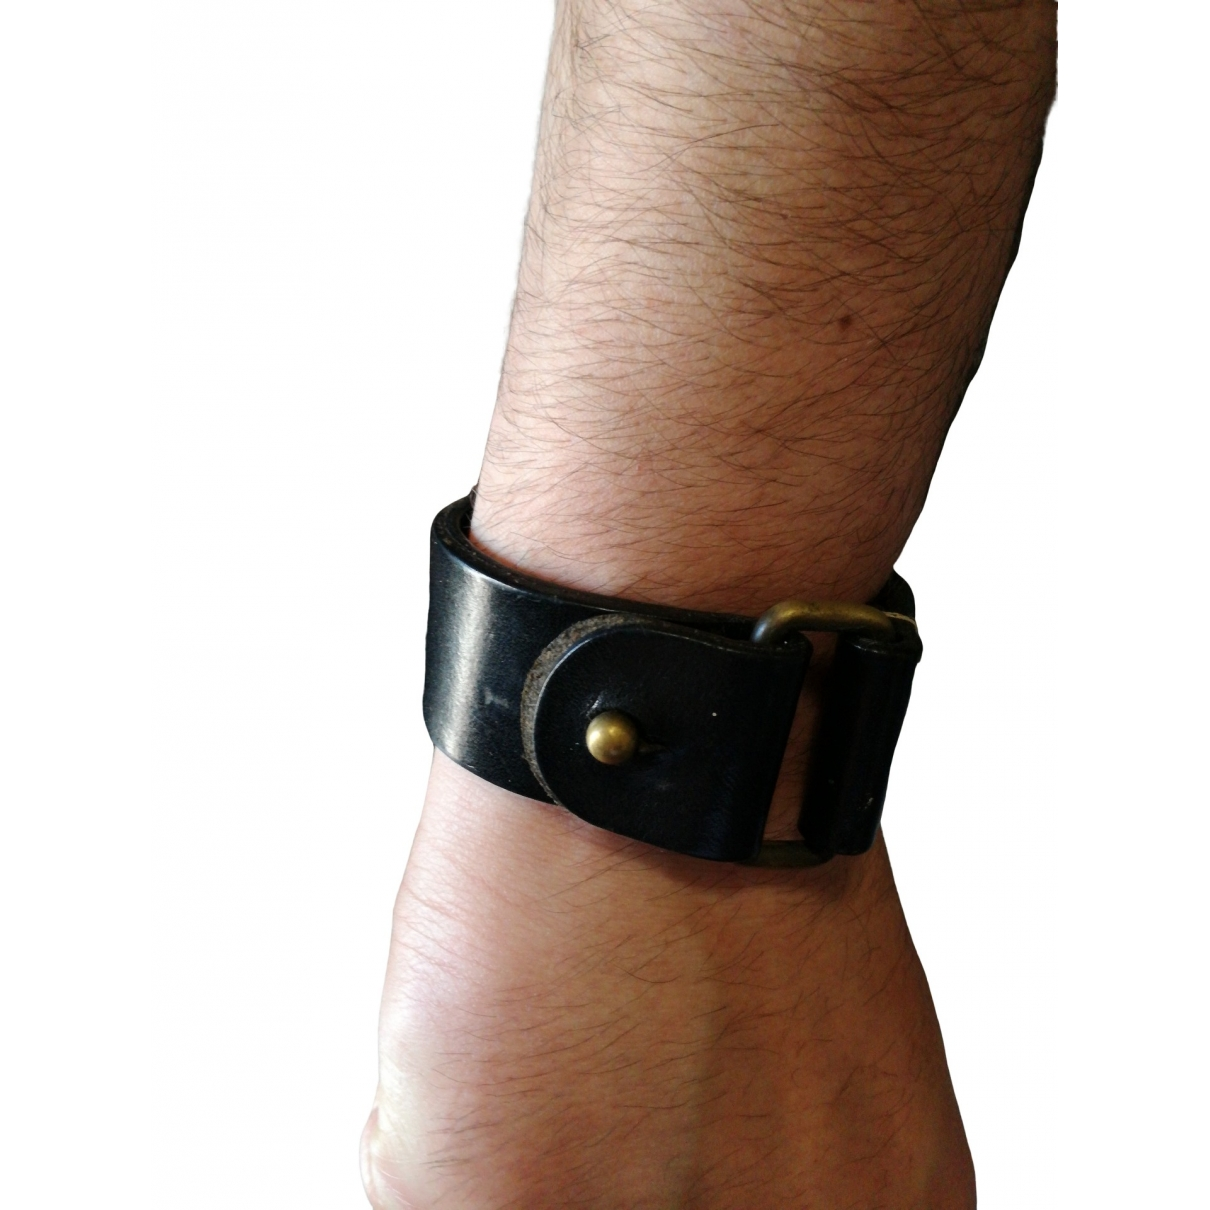 Maison Martin Margiela \N Black Leather Jewellery for Men \N